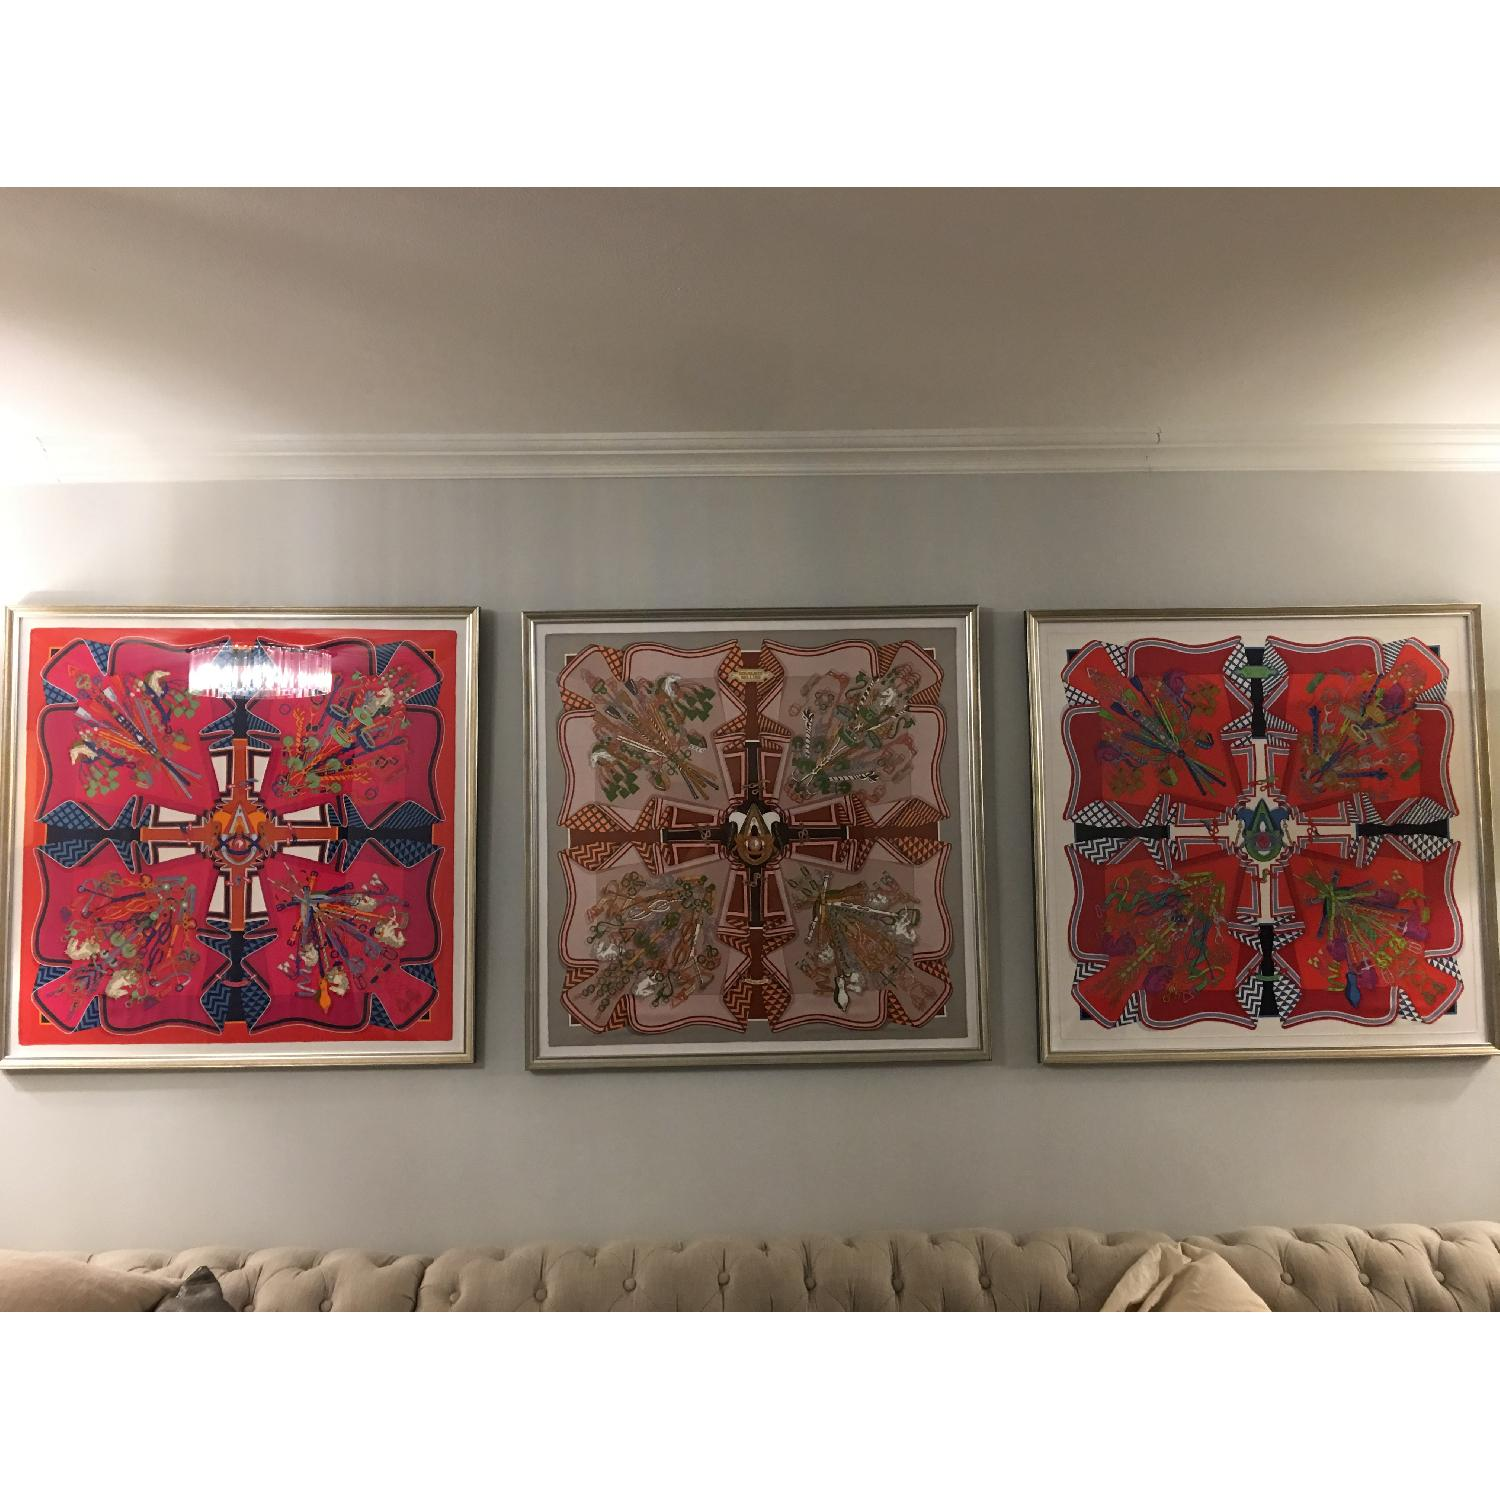 Hermes Framed Scarf Bouquet Sellier in Red - image-2